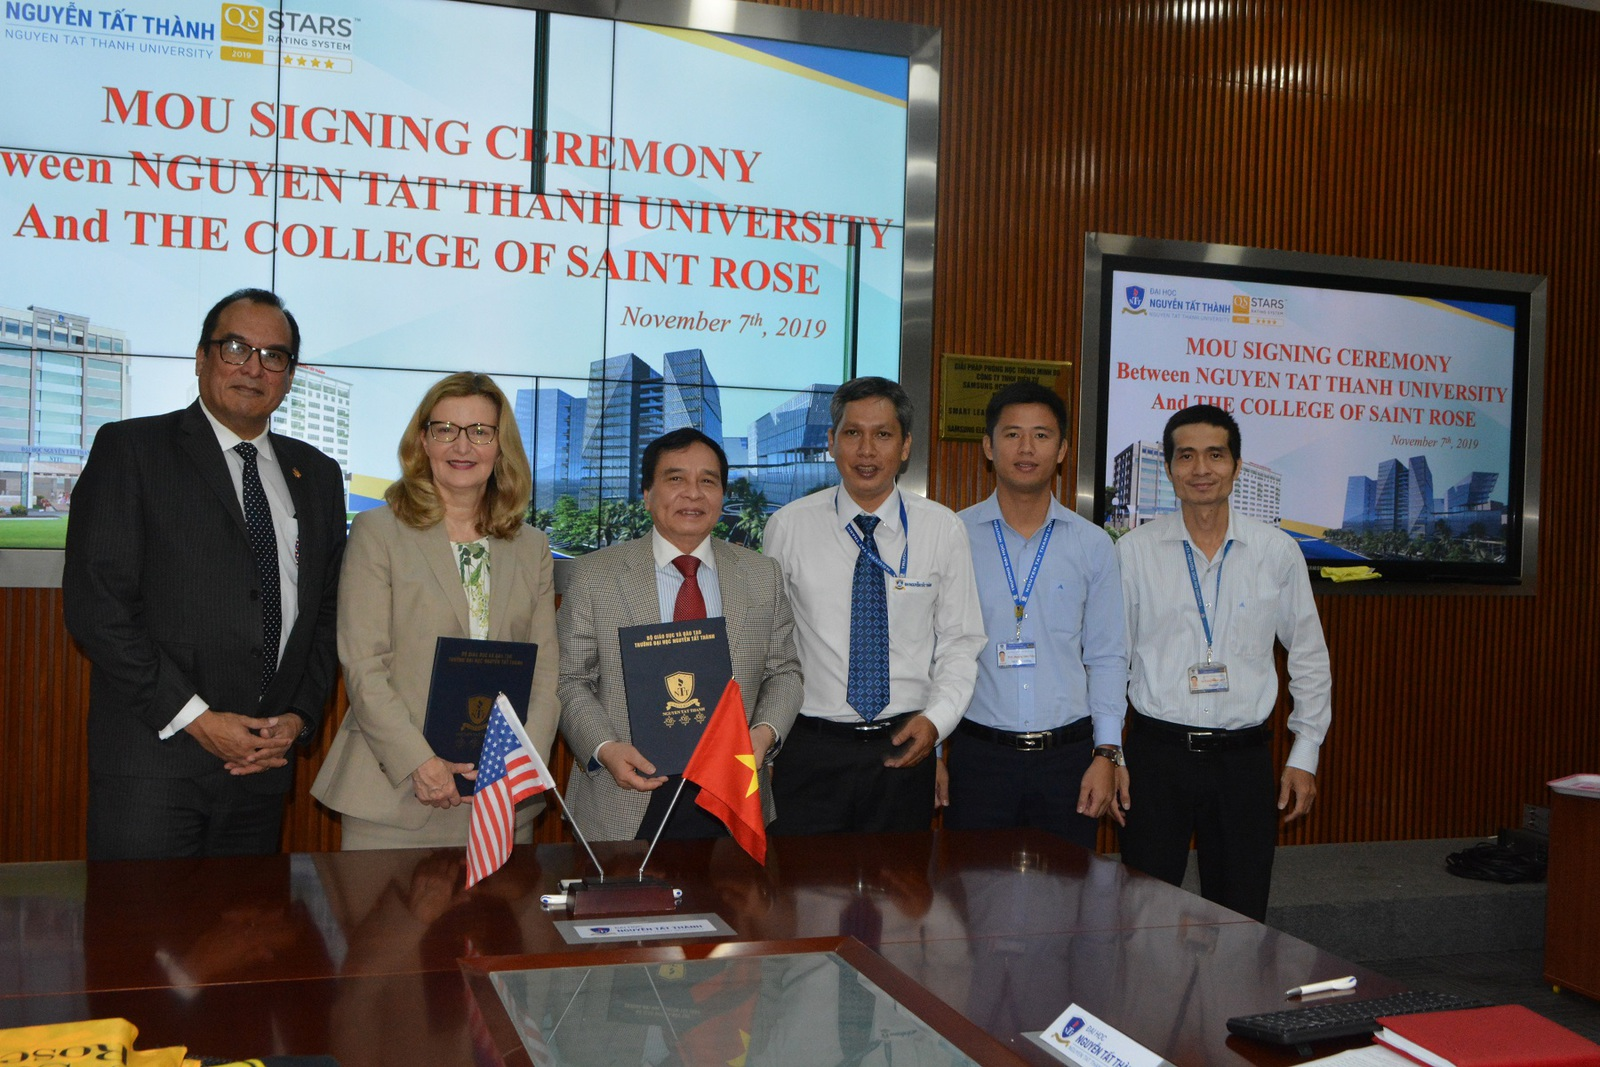 Saint Rose President Carolyn J. Stefanco at the memorandum of understanding signing ceremony with Nguyen Tat Thanh University officials in Vietnam.